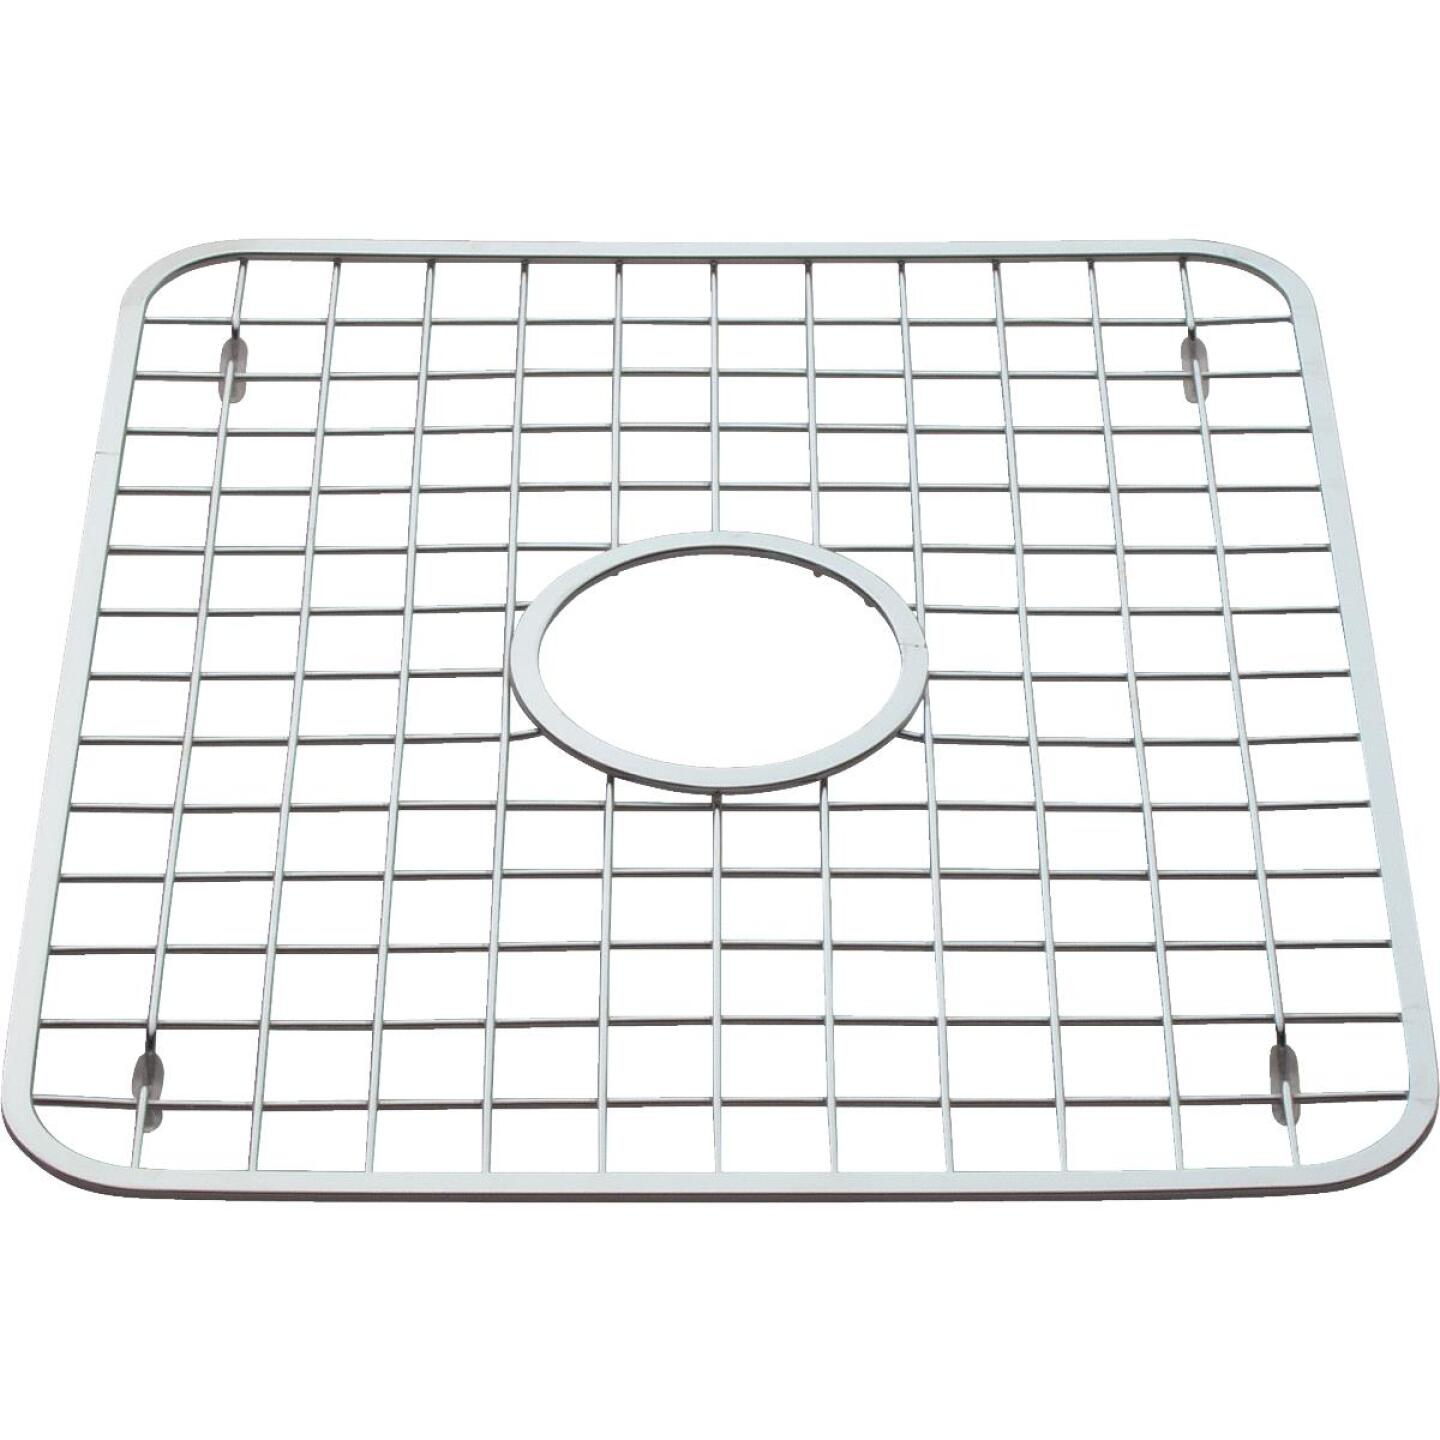 InterDesign Aria 12-3/4 In. x 11 In. Sink Rack Grid Image 1